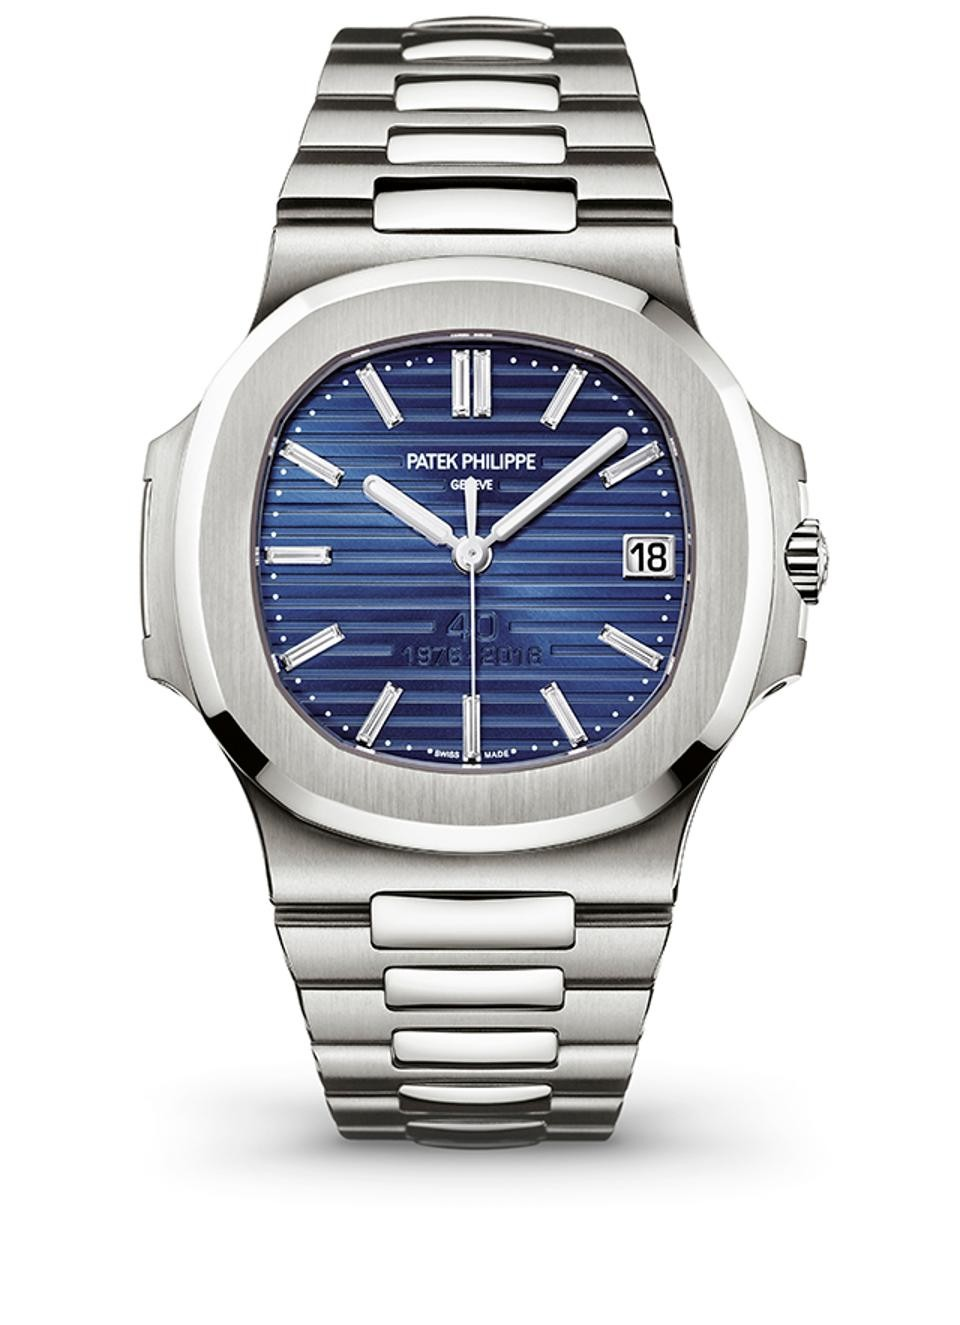 Patek Philippe Nautilus 5711P in Platinum 40th Anniversary